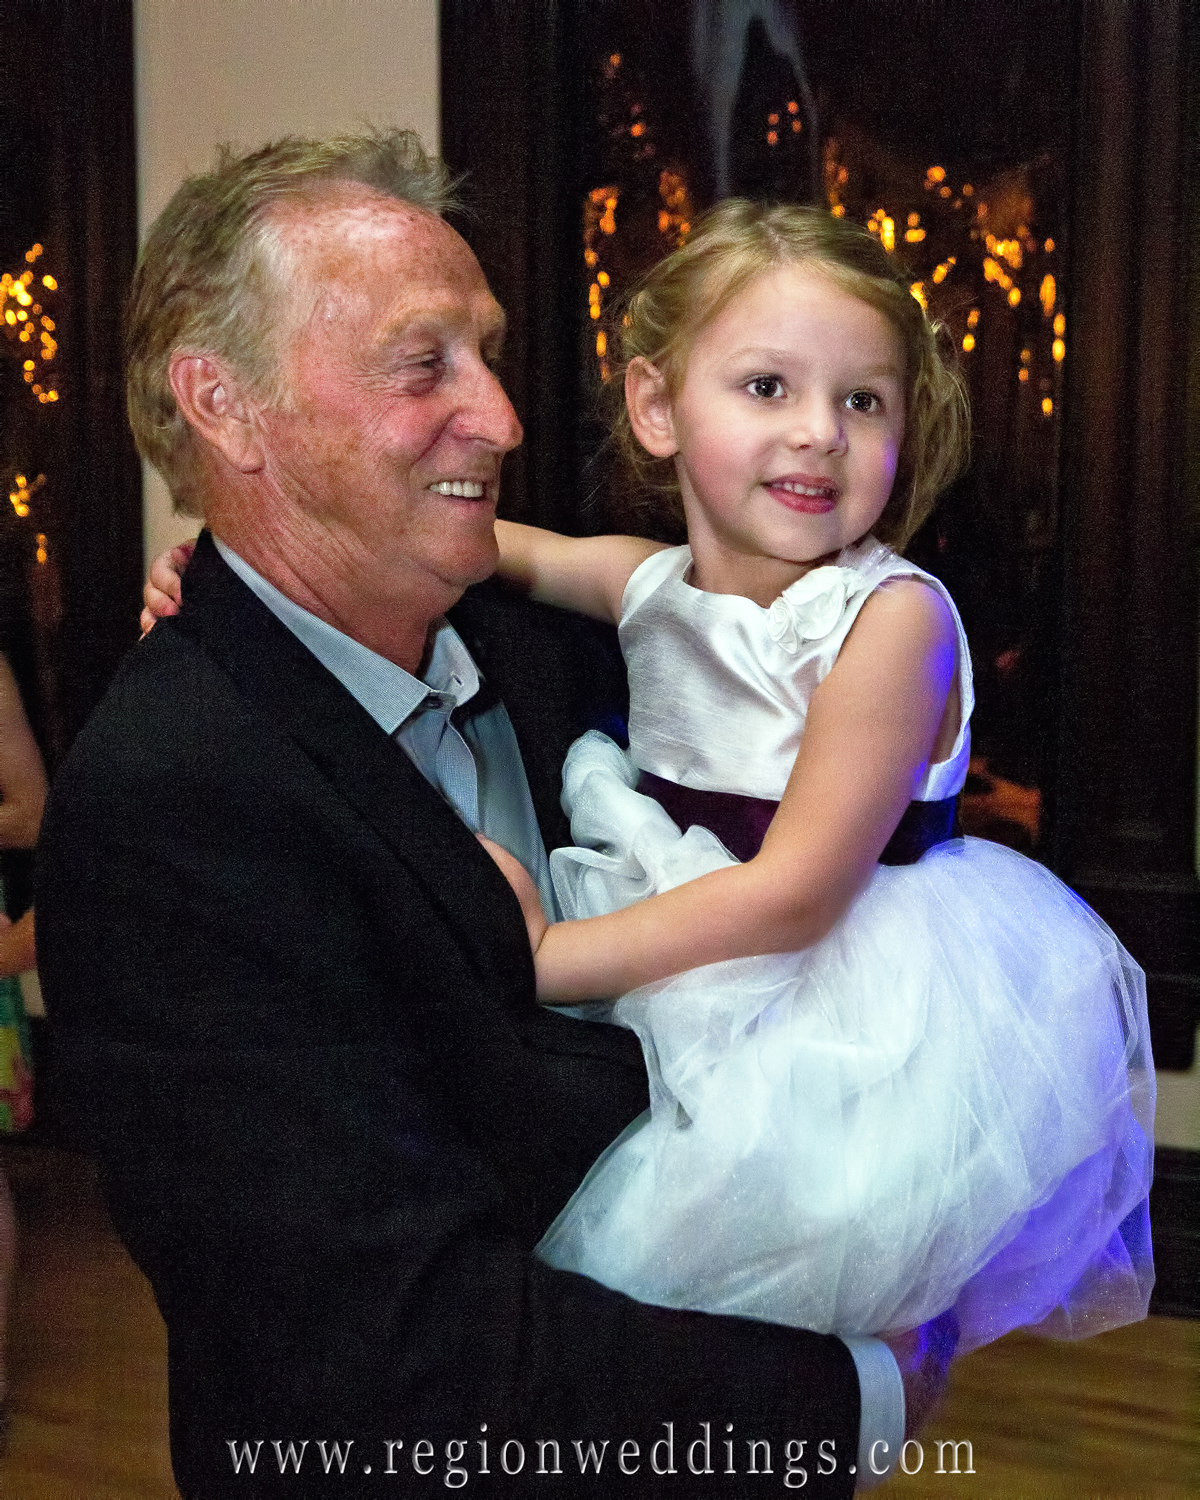 A grandfather dances with the flower girl in this fun, candid wedding photo.